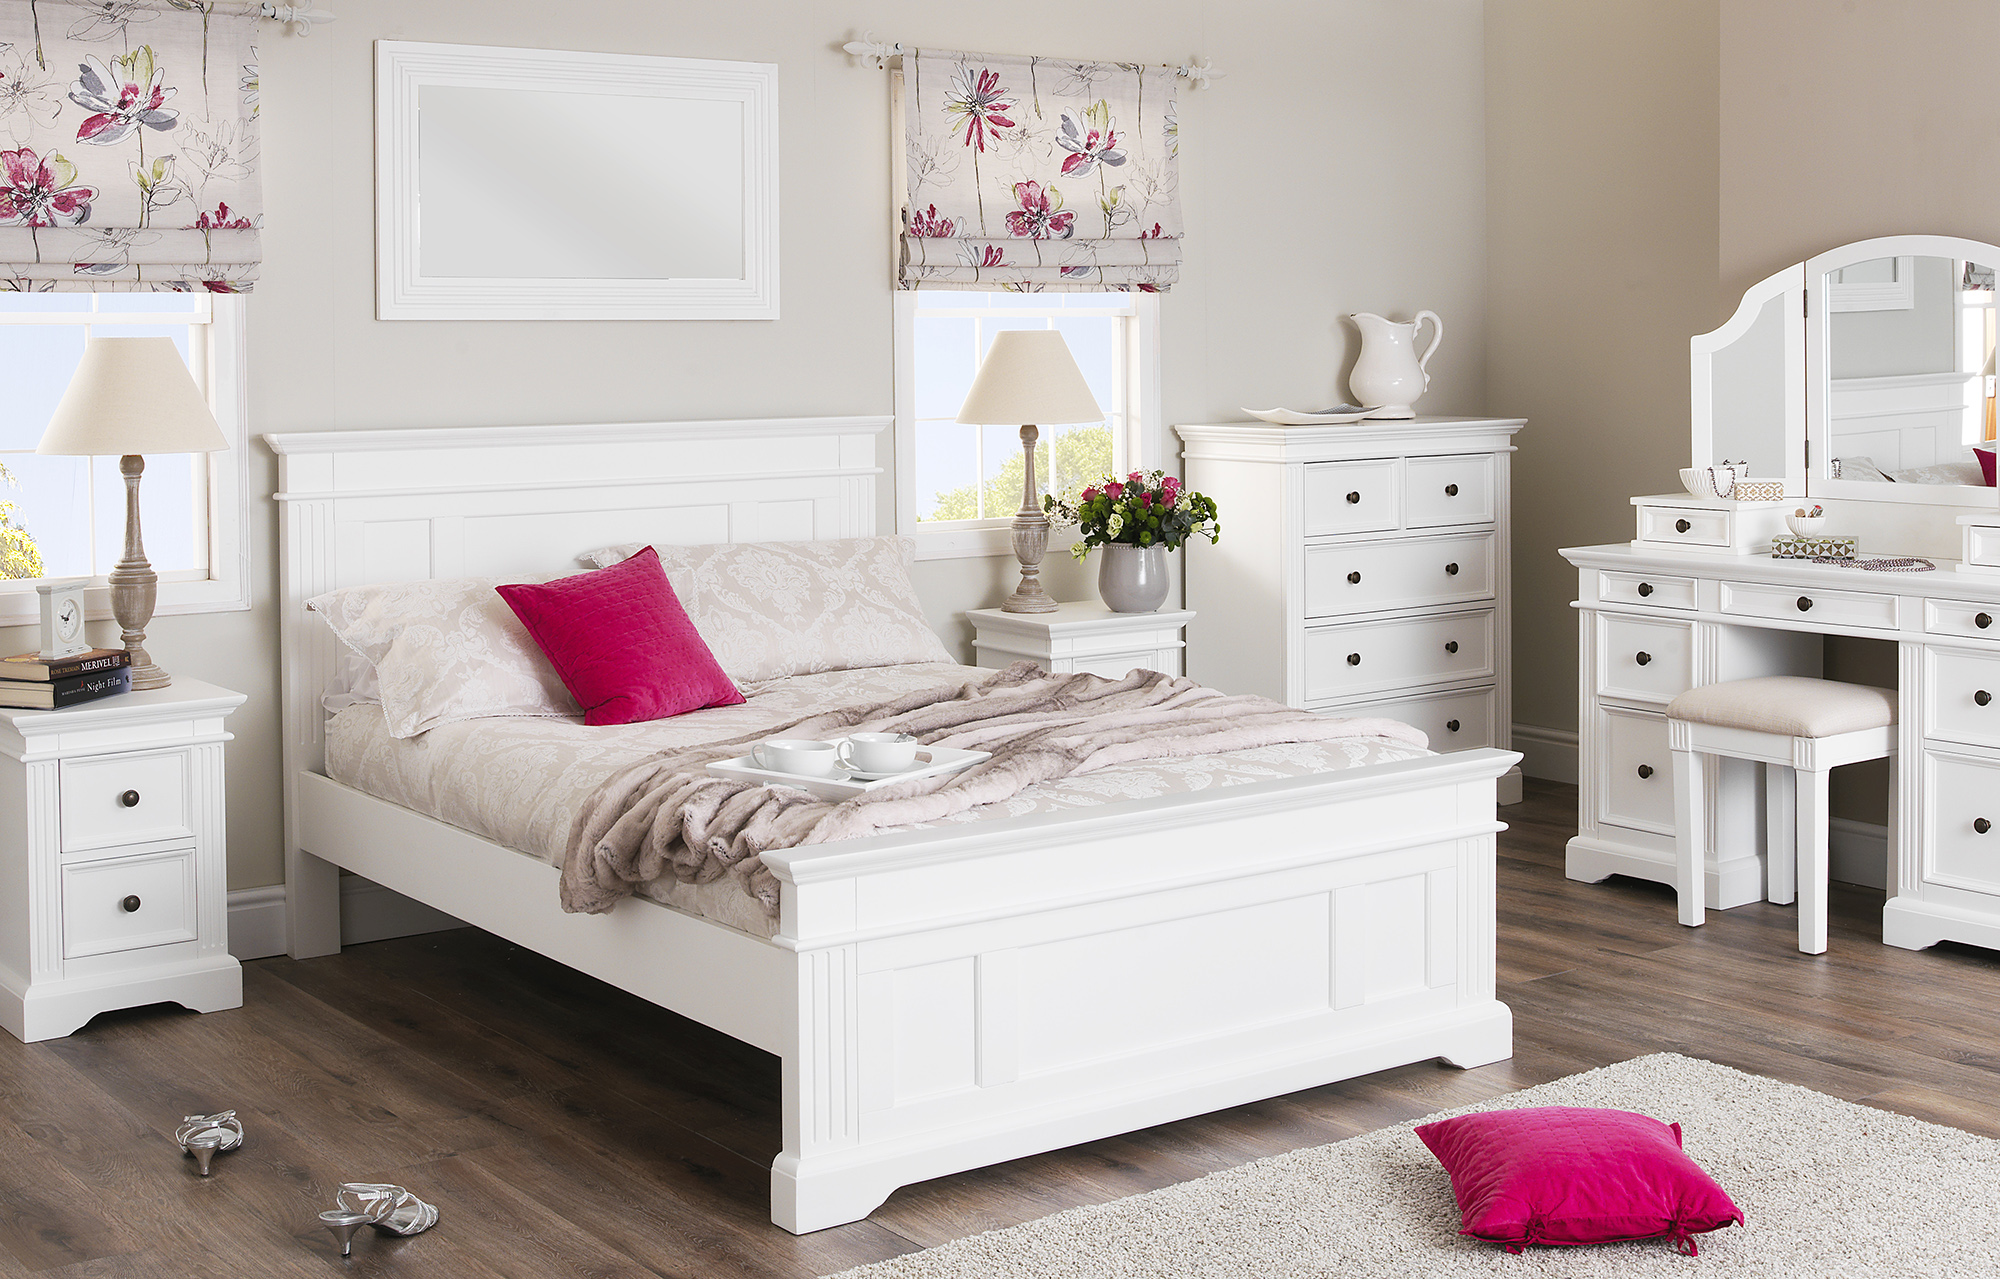 Designed shabby chic bedroom furniture sets gives simplicity and elegant  look